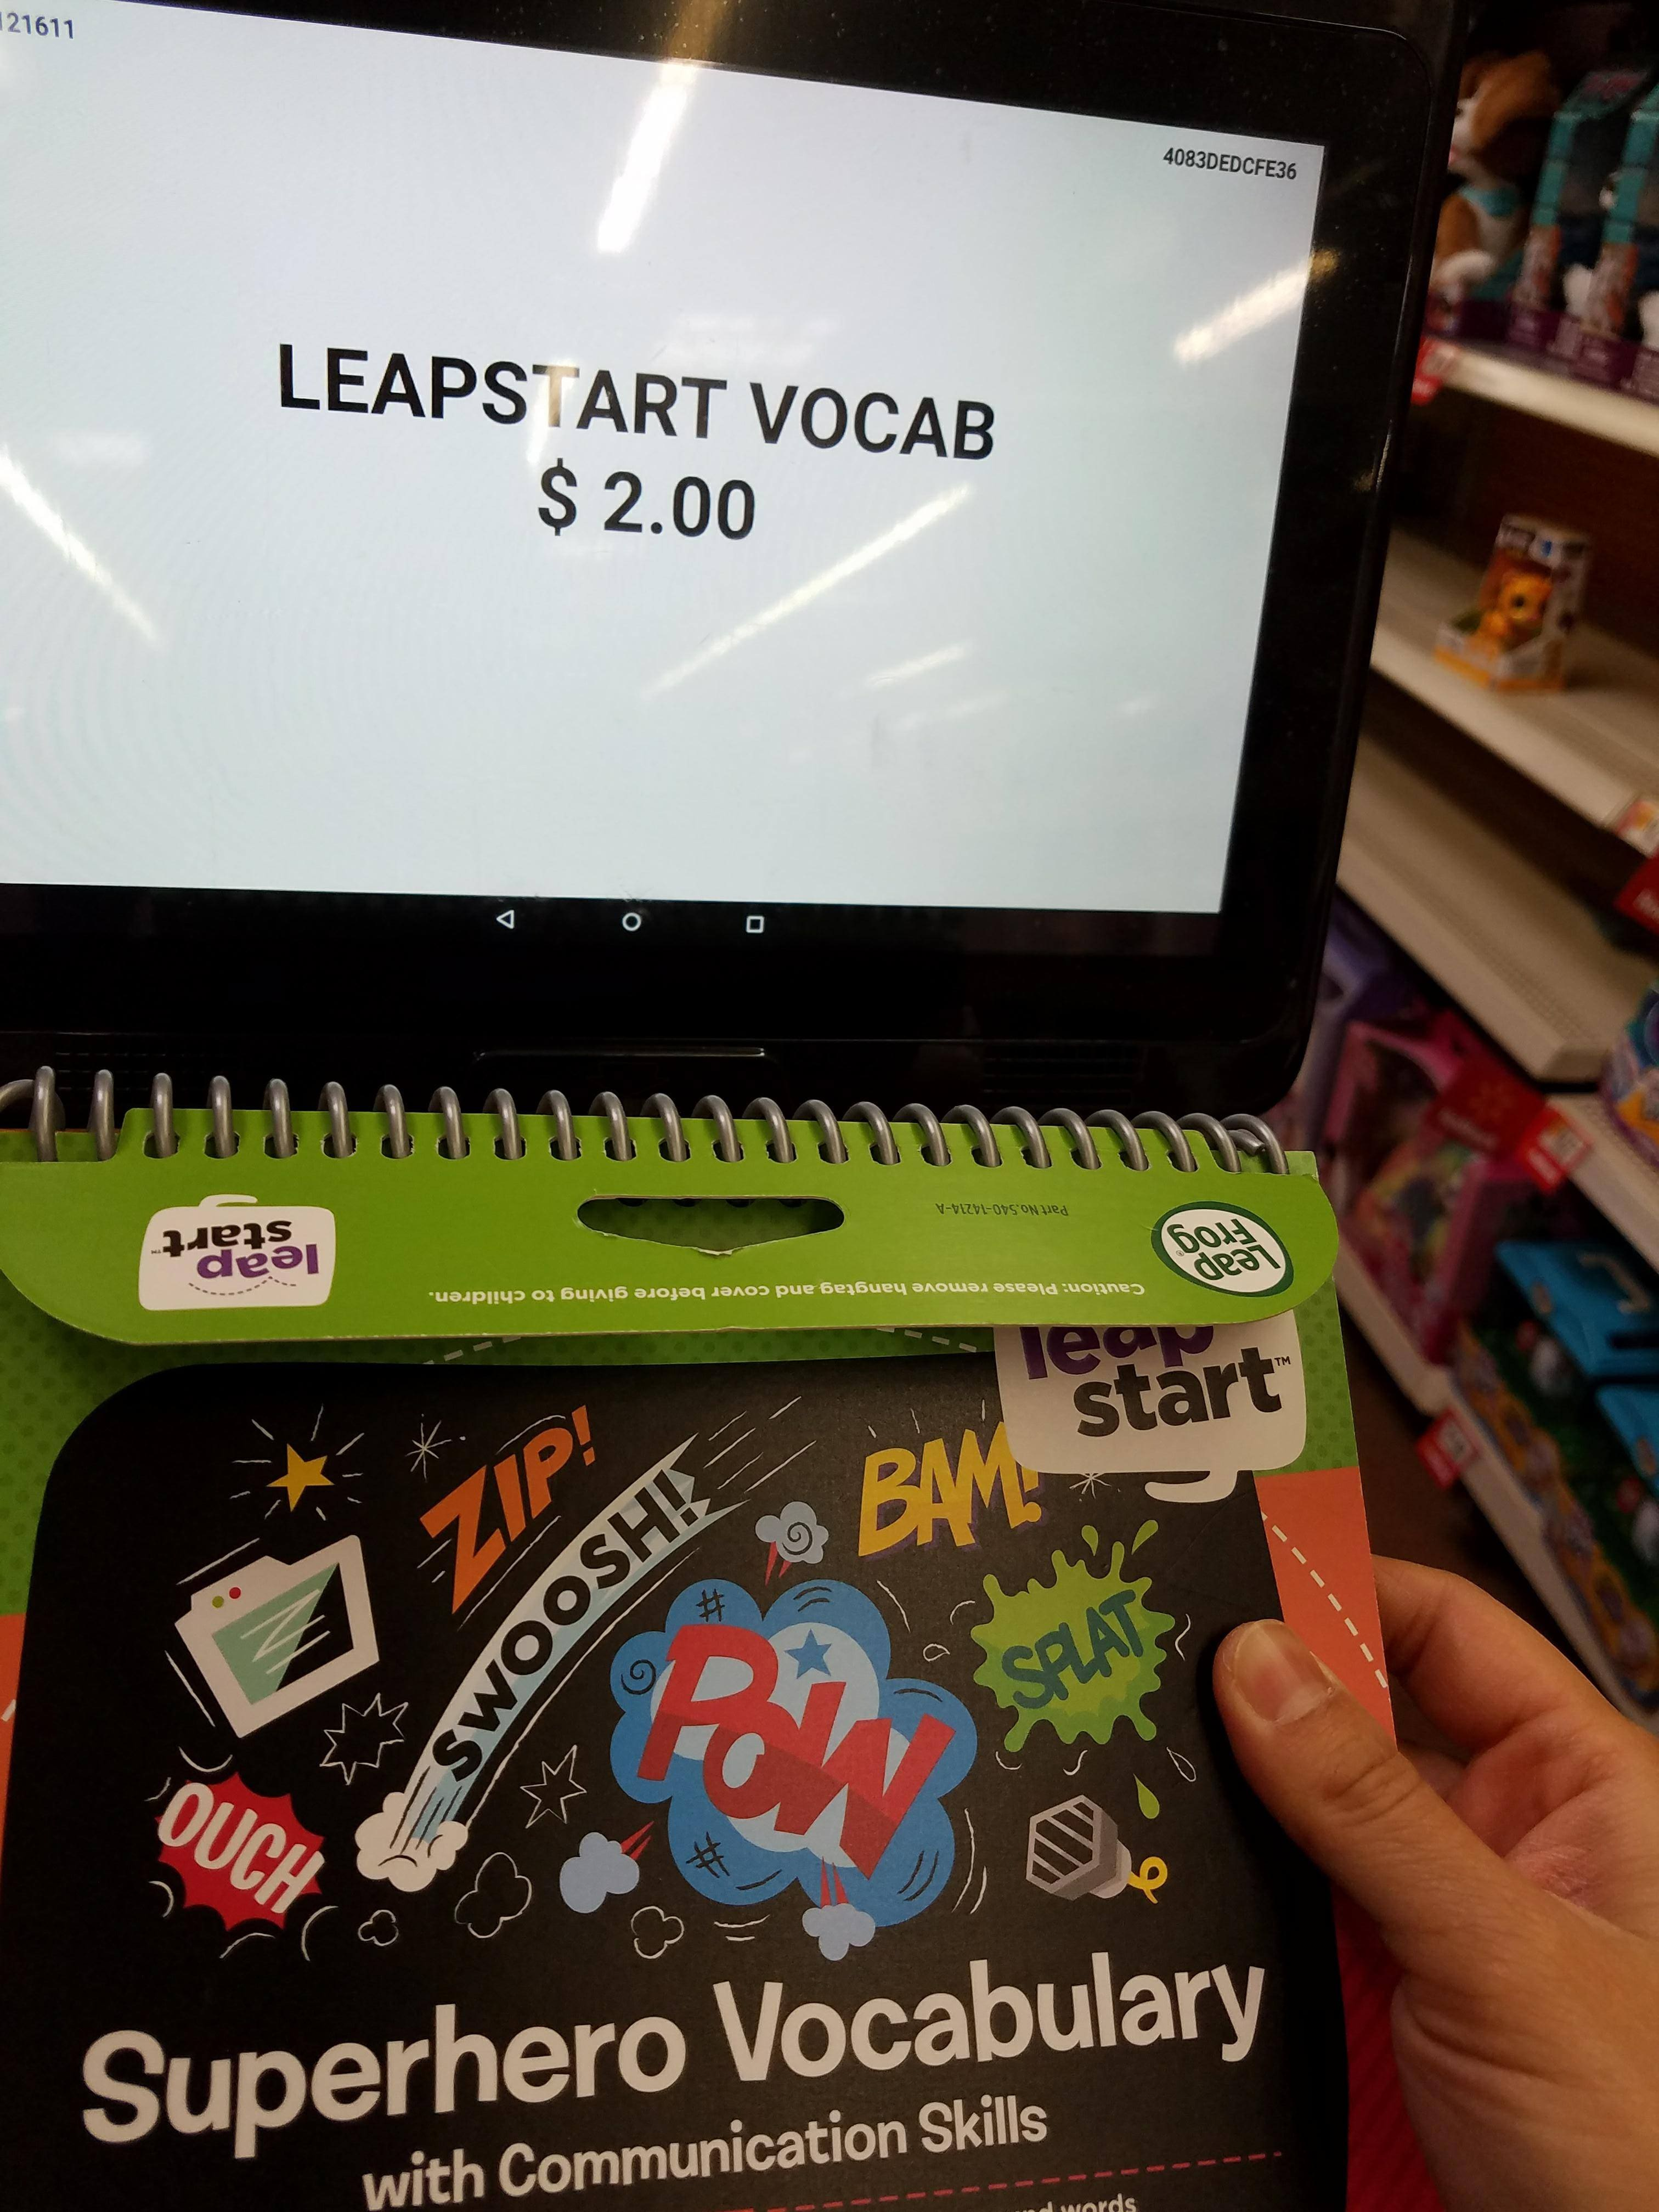 Walmart CLEARANCE Ymmv & BM Leapstart superhero vocabulary book $2